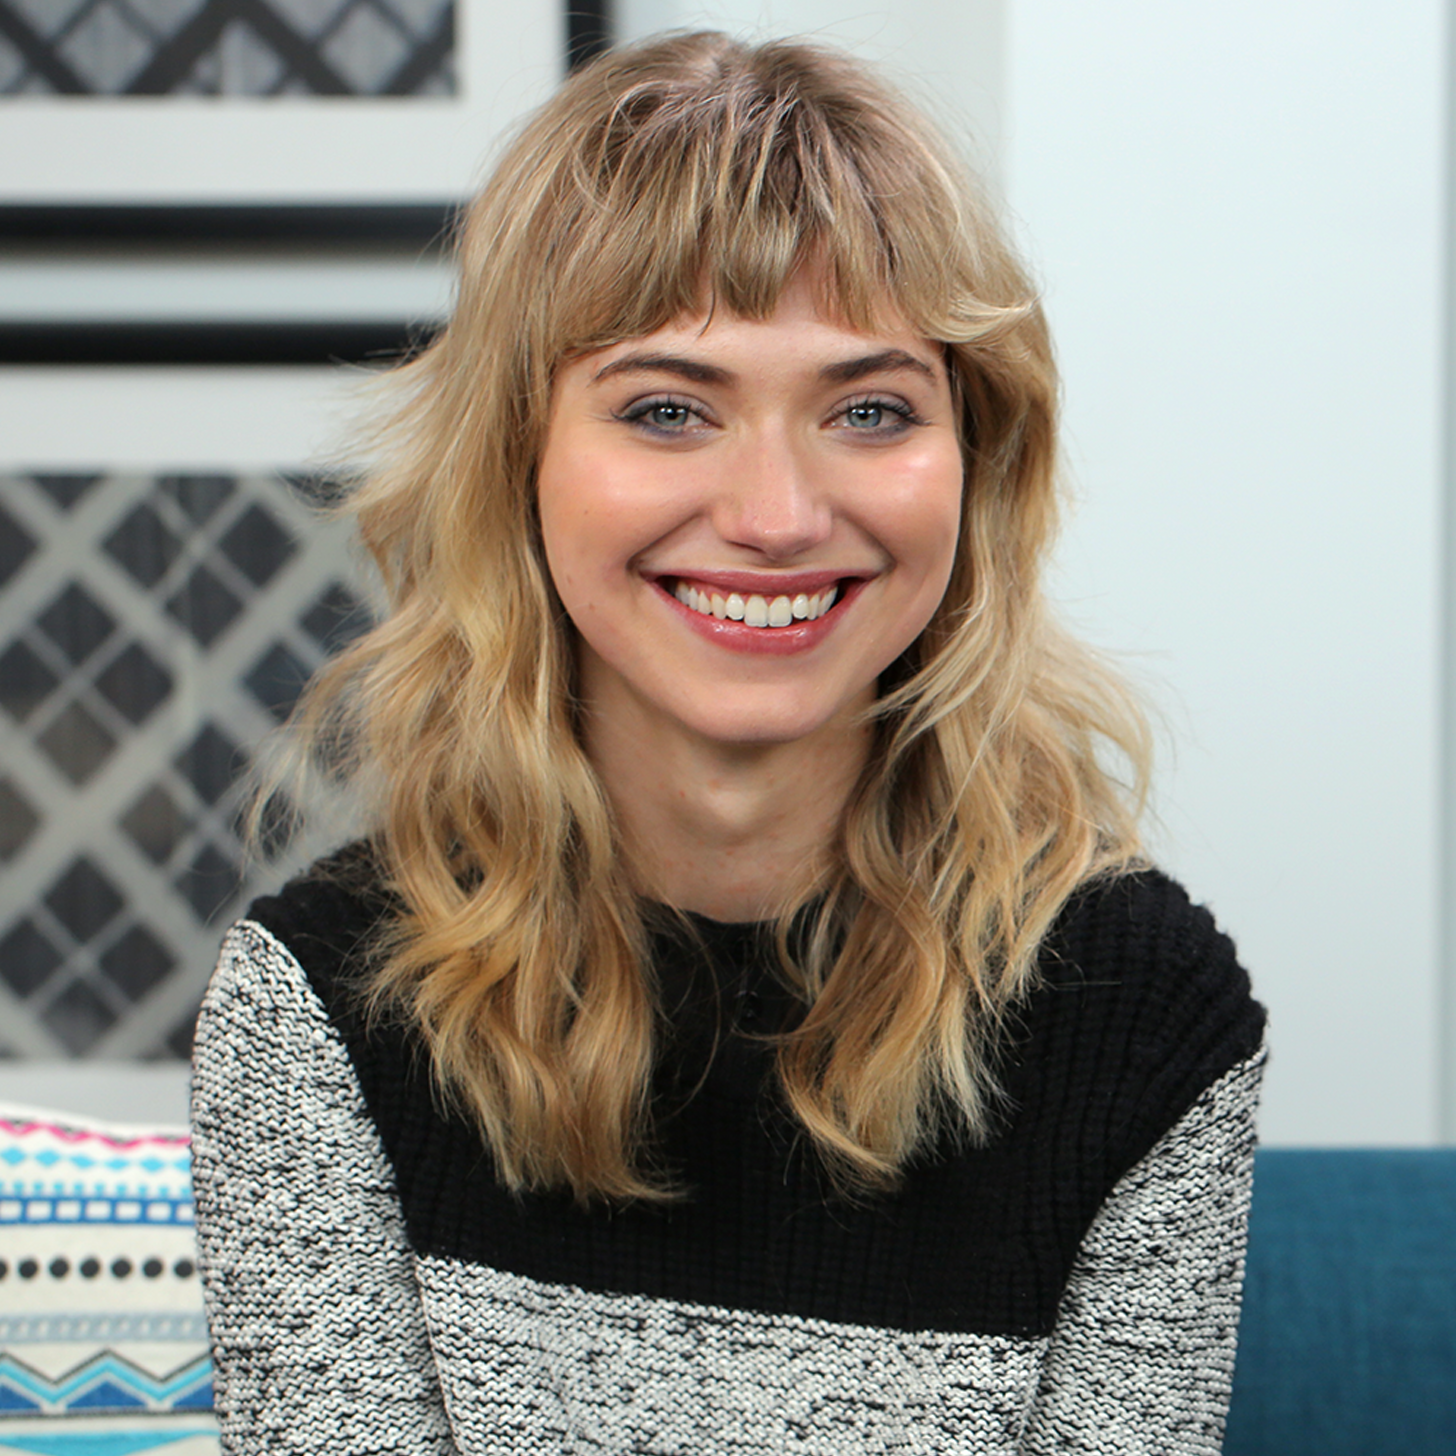 Imogen Poots earned a  million dollar salary, leaving the net worth at 2 million in 2017